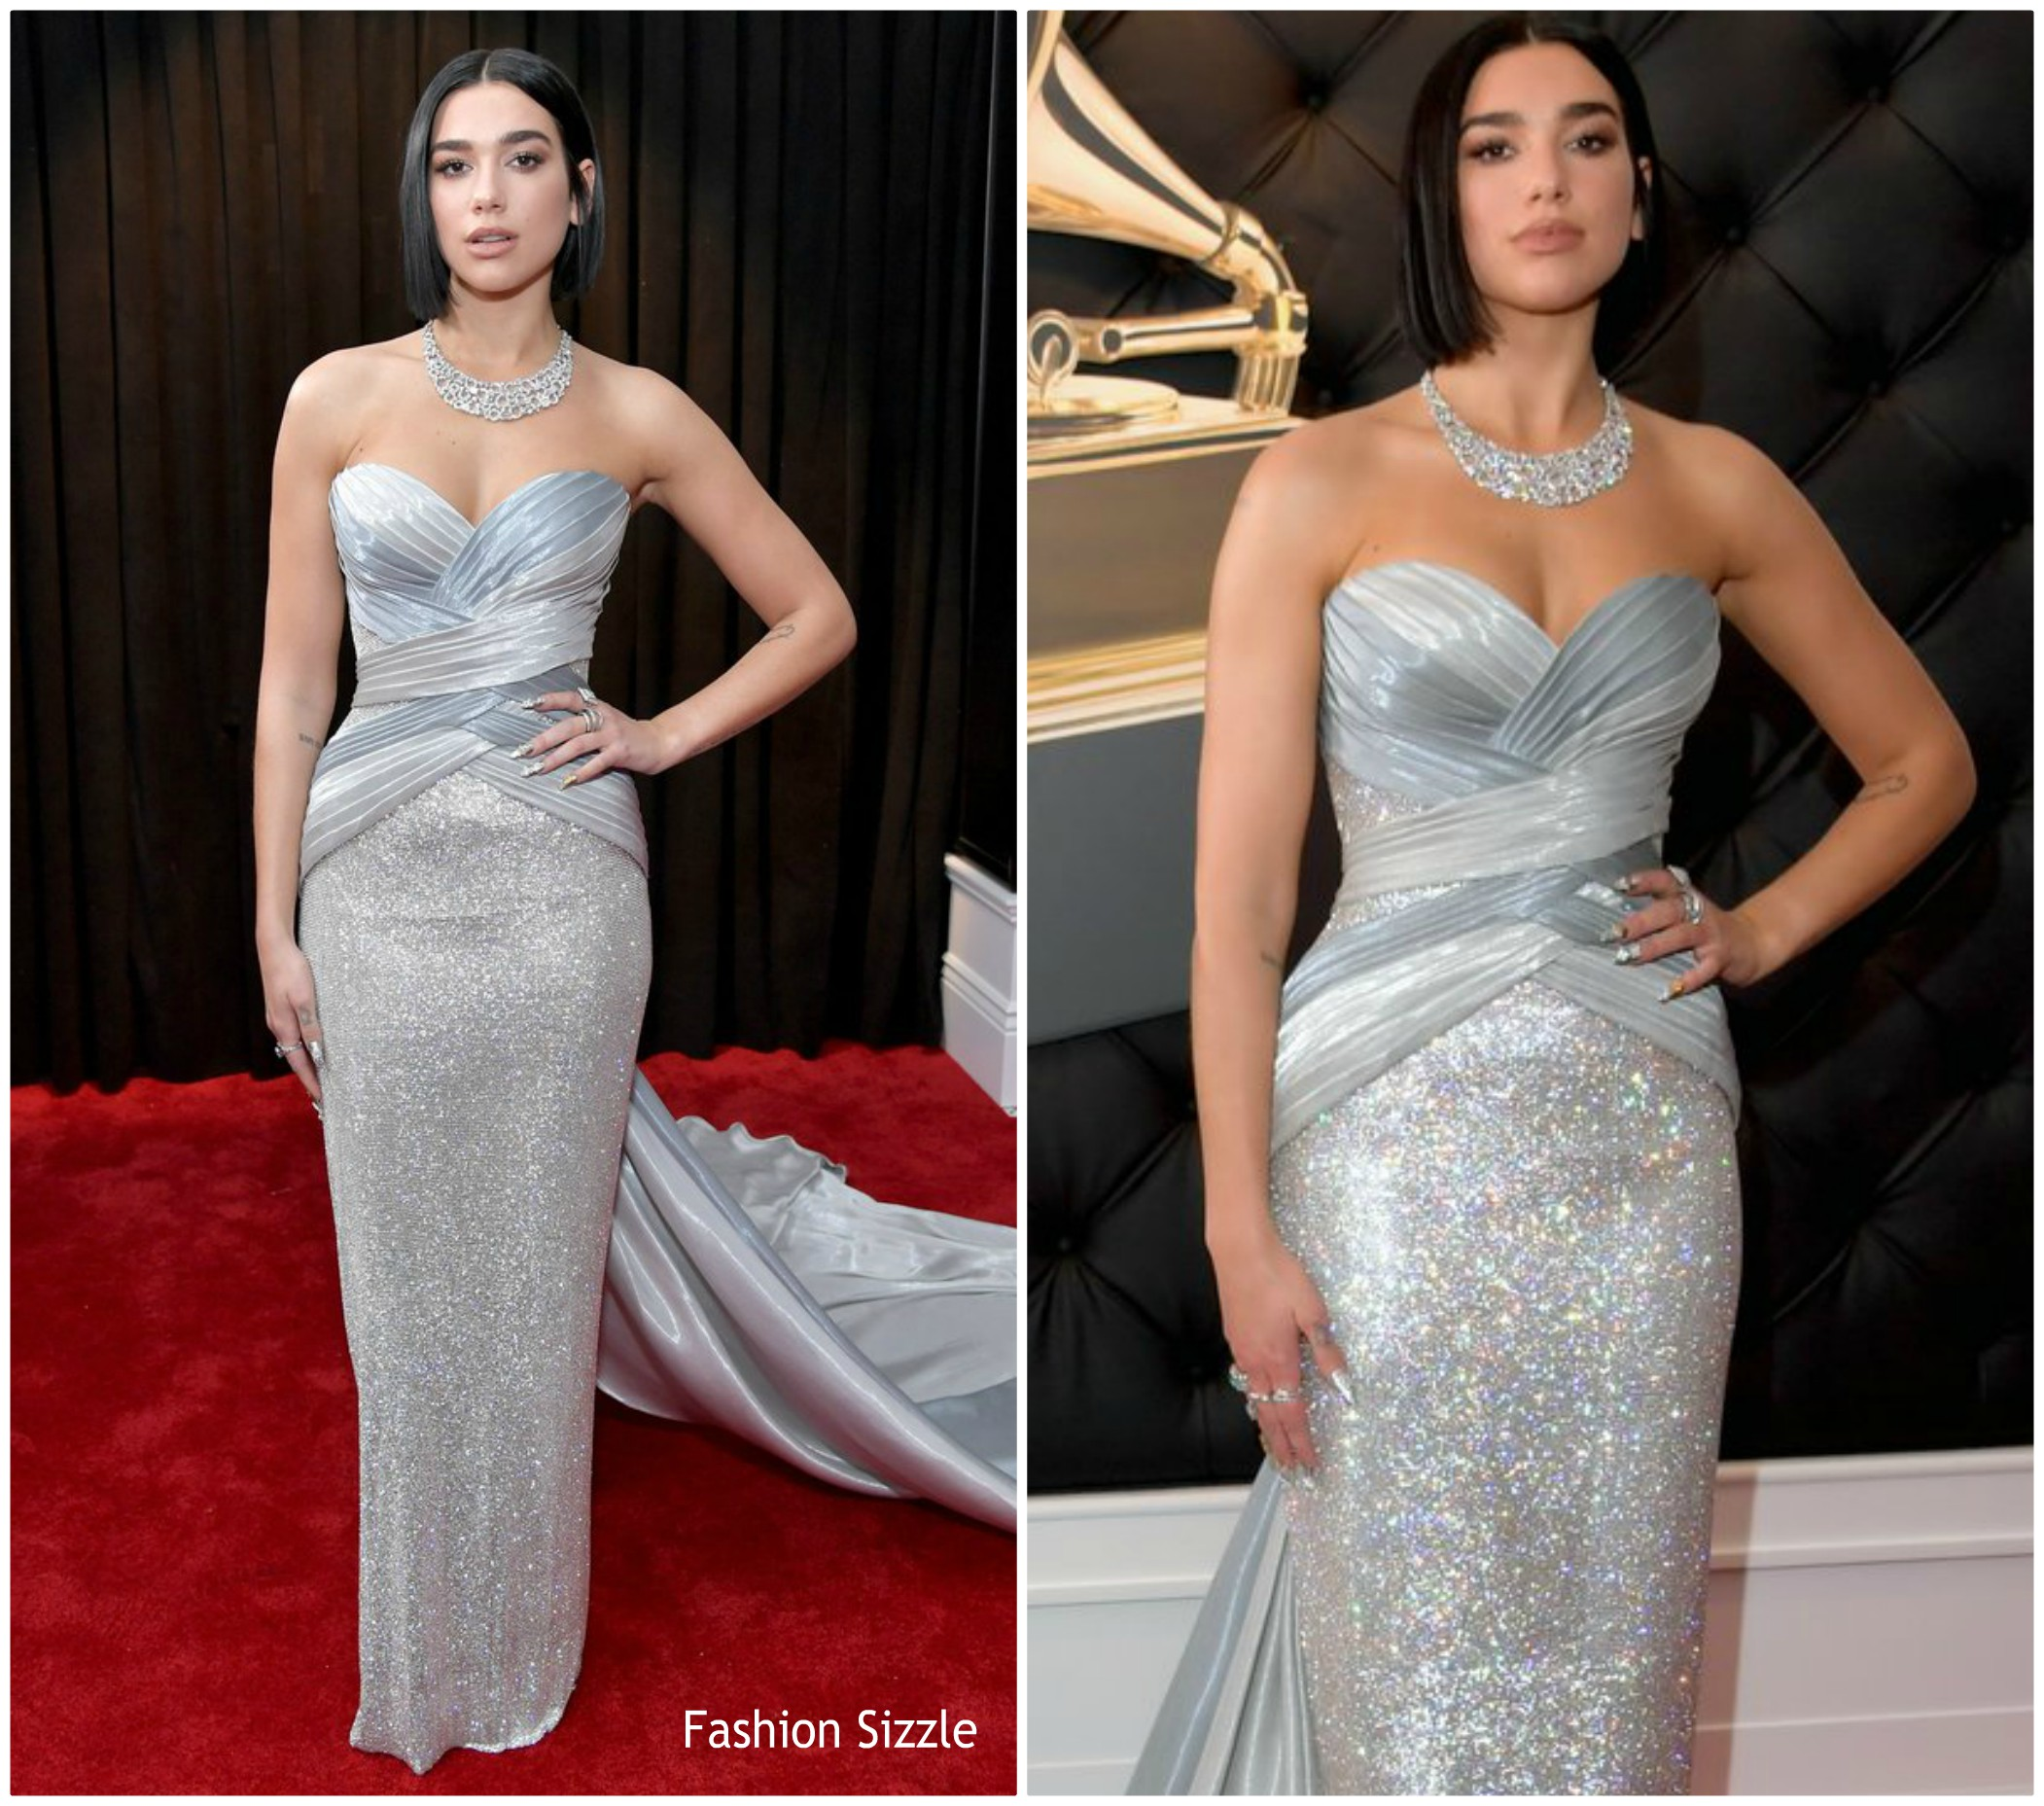 dua-lipa-in-atelier-versace-2019-grammy-awards